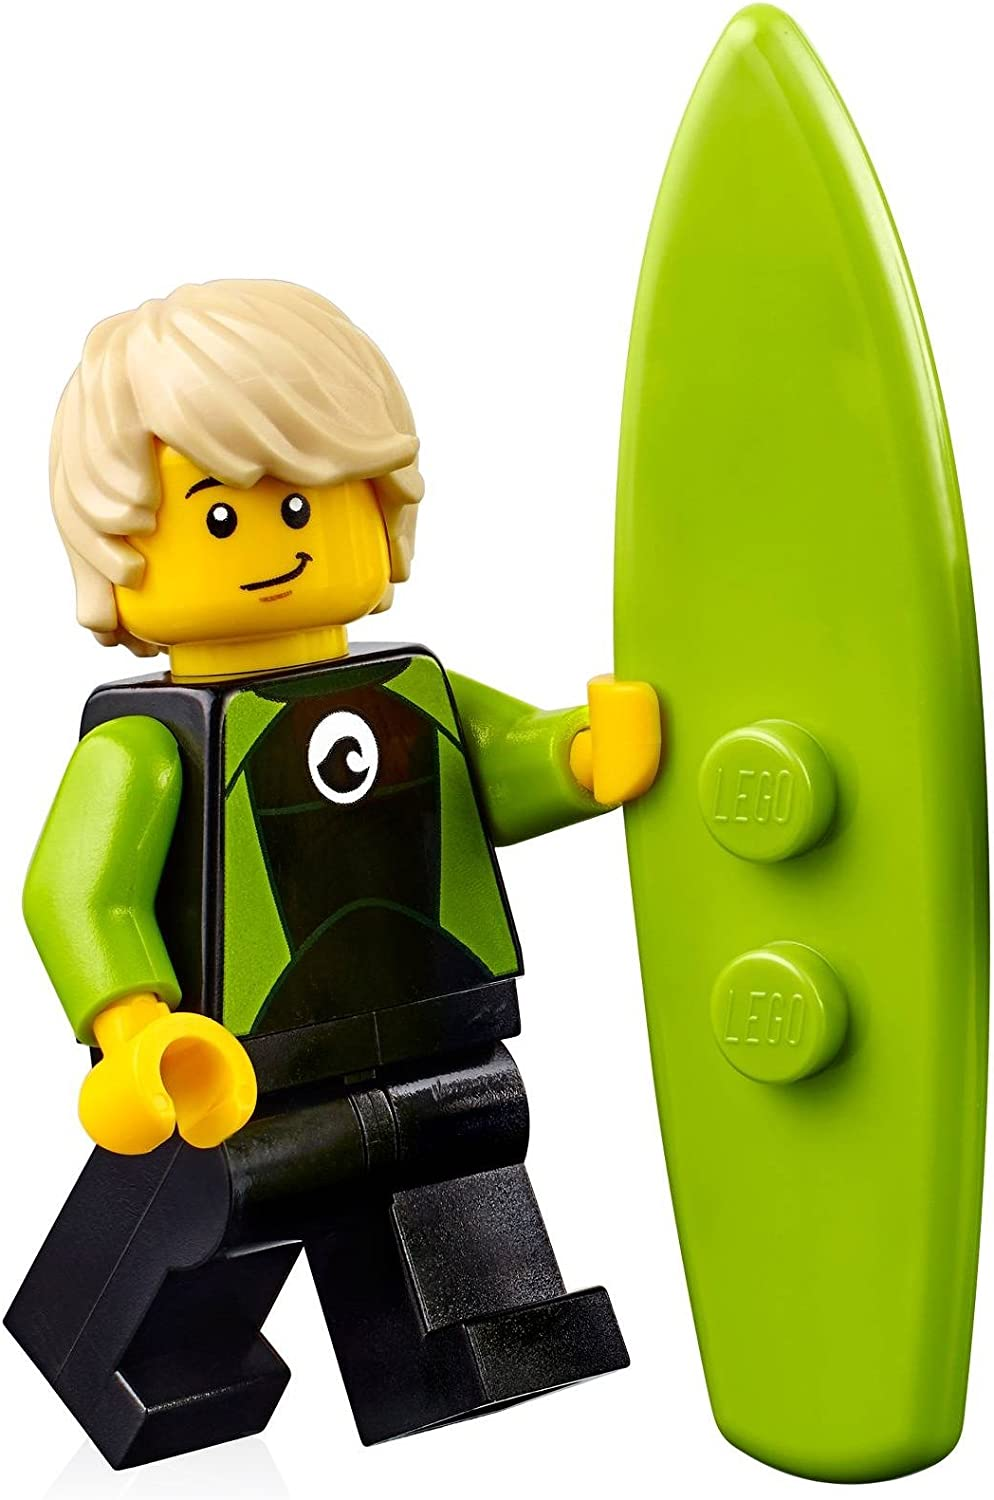 LEGO City Minifigure: Surfer in Black and Lime Wetsuit (w/ Surfboard) 60163